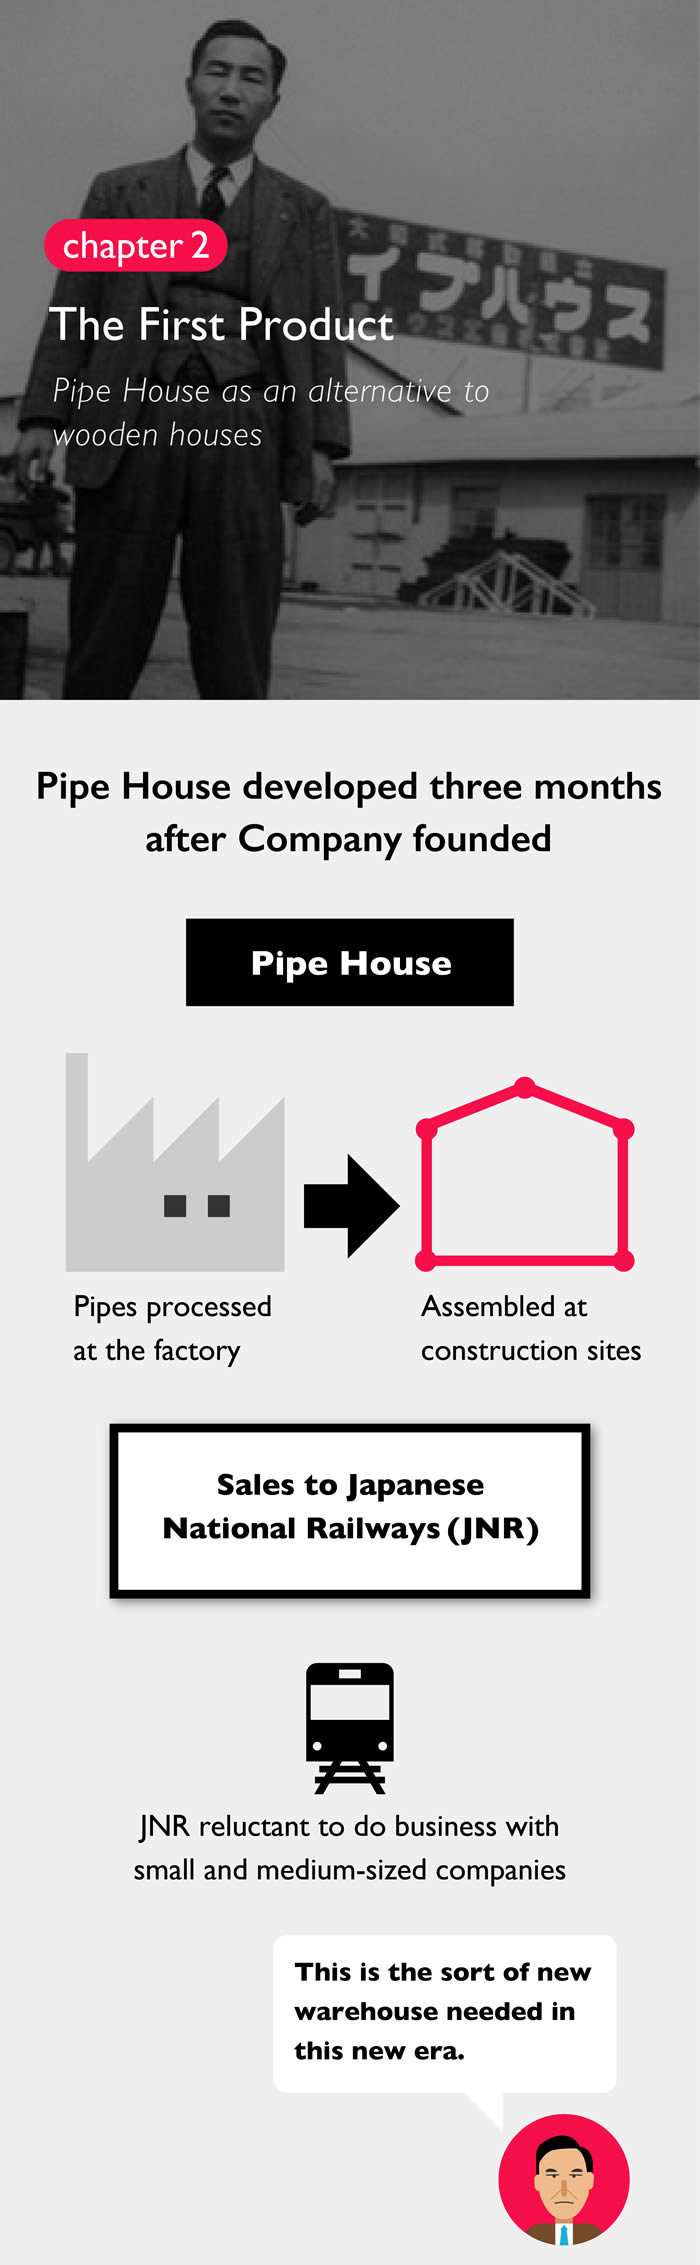 Chapter 2 The First Product Pipe House as an alternative to wooden houses Pipe House developed three months after Company founded Pipe House Pipes processed at the factory Assembled at construction sites Sales to Japanese National Railways JNR reluctant to do business with small and medium-sized companies This is the sort of new warehouse needed in this new era.